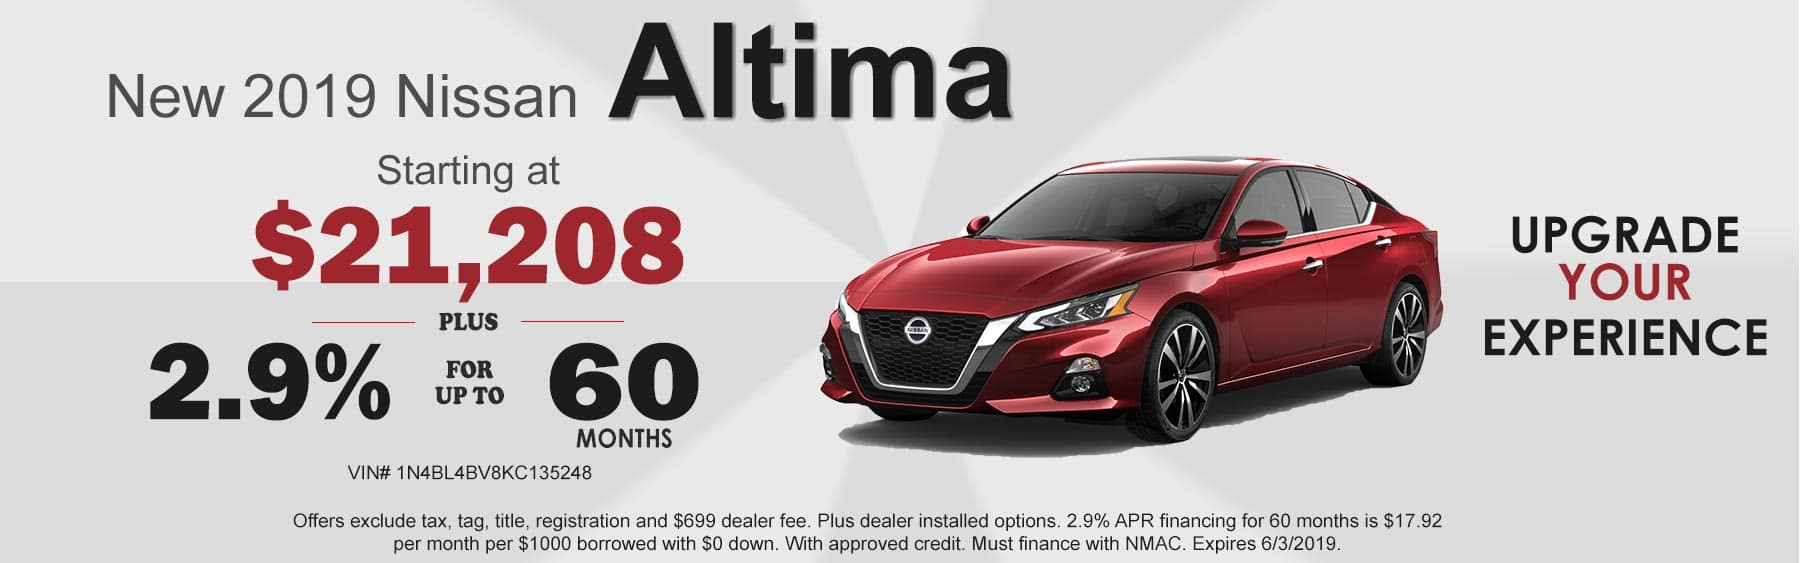 Nissan Altima Offers, Altima for sale Boone, NC